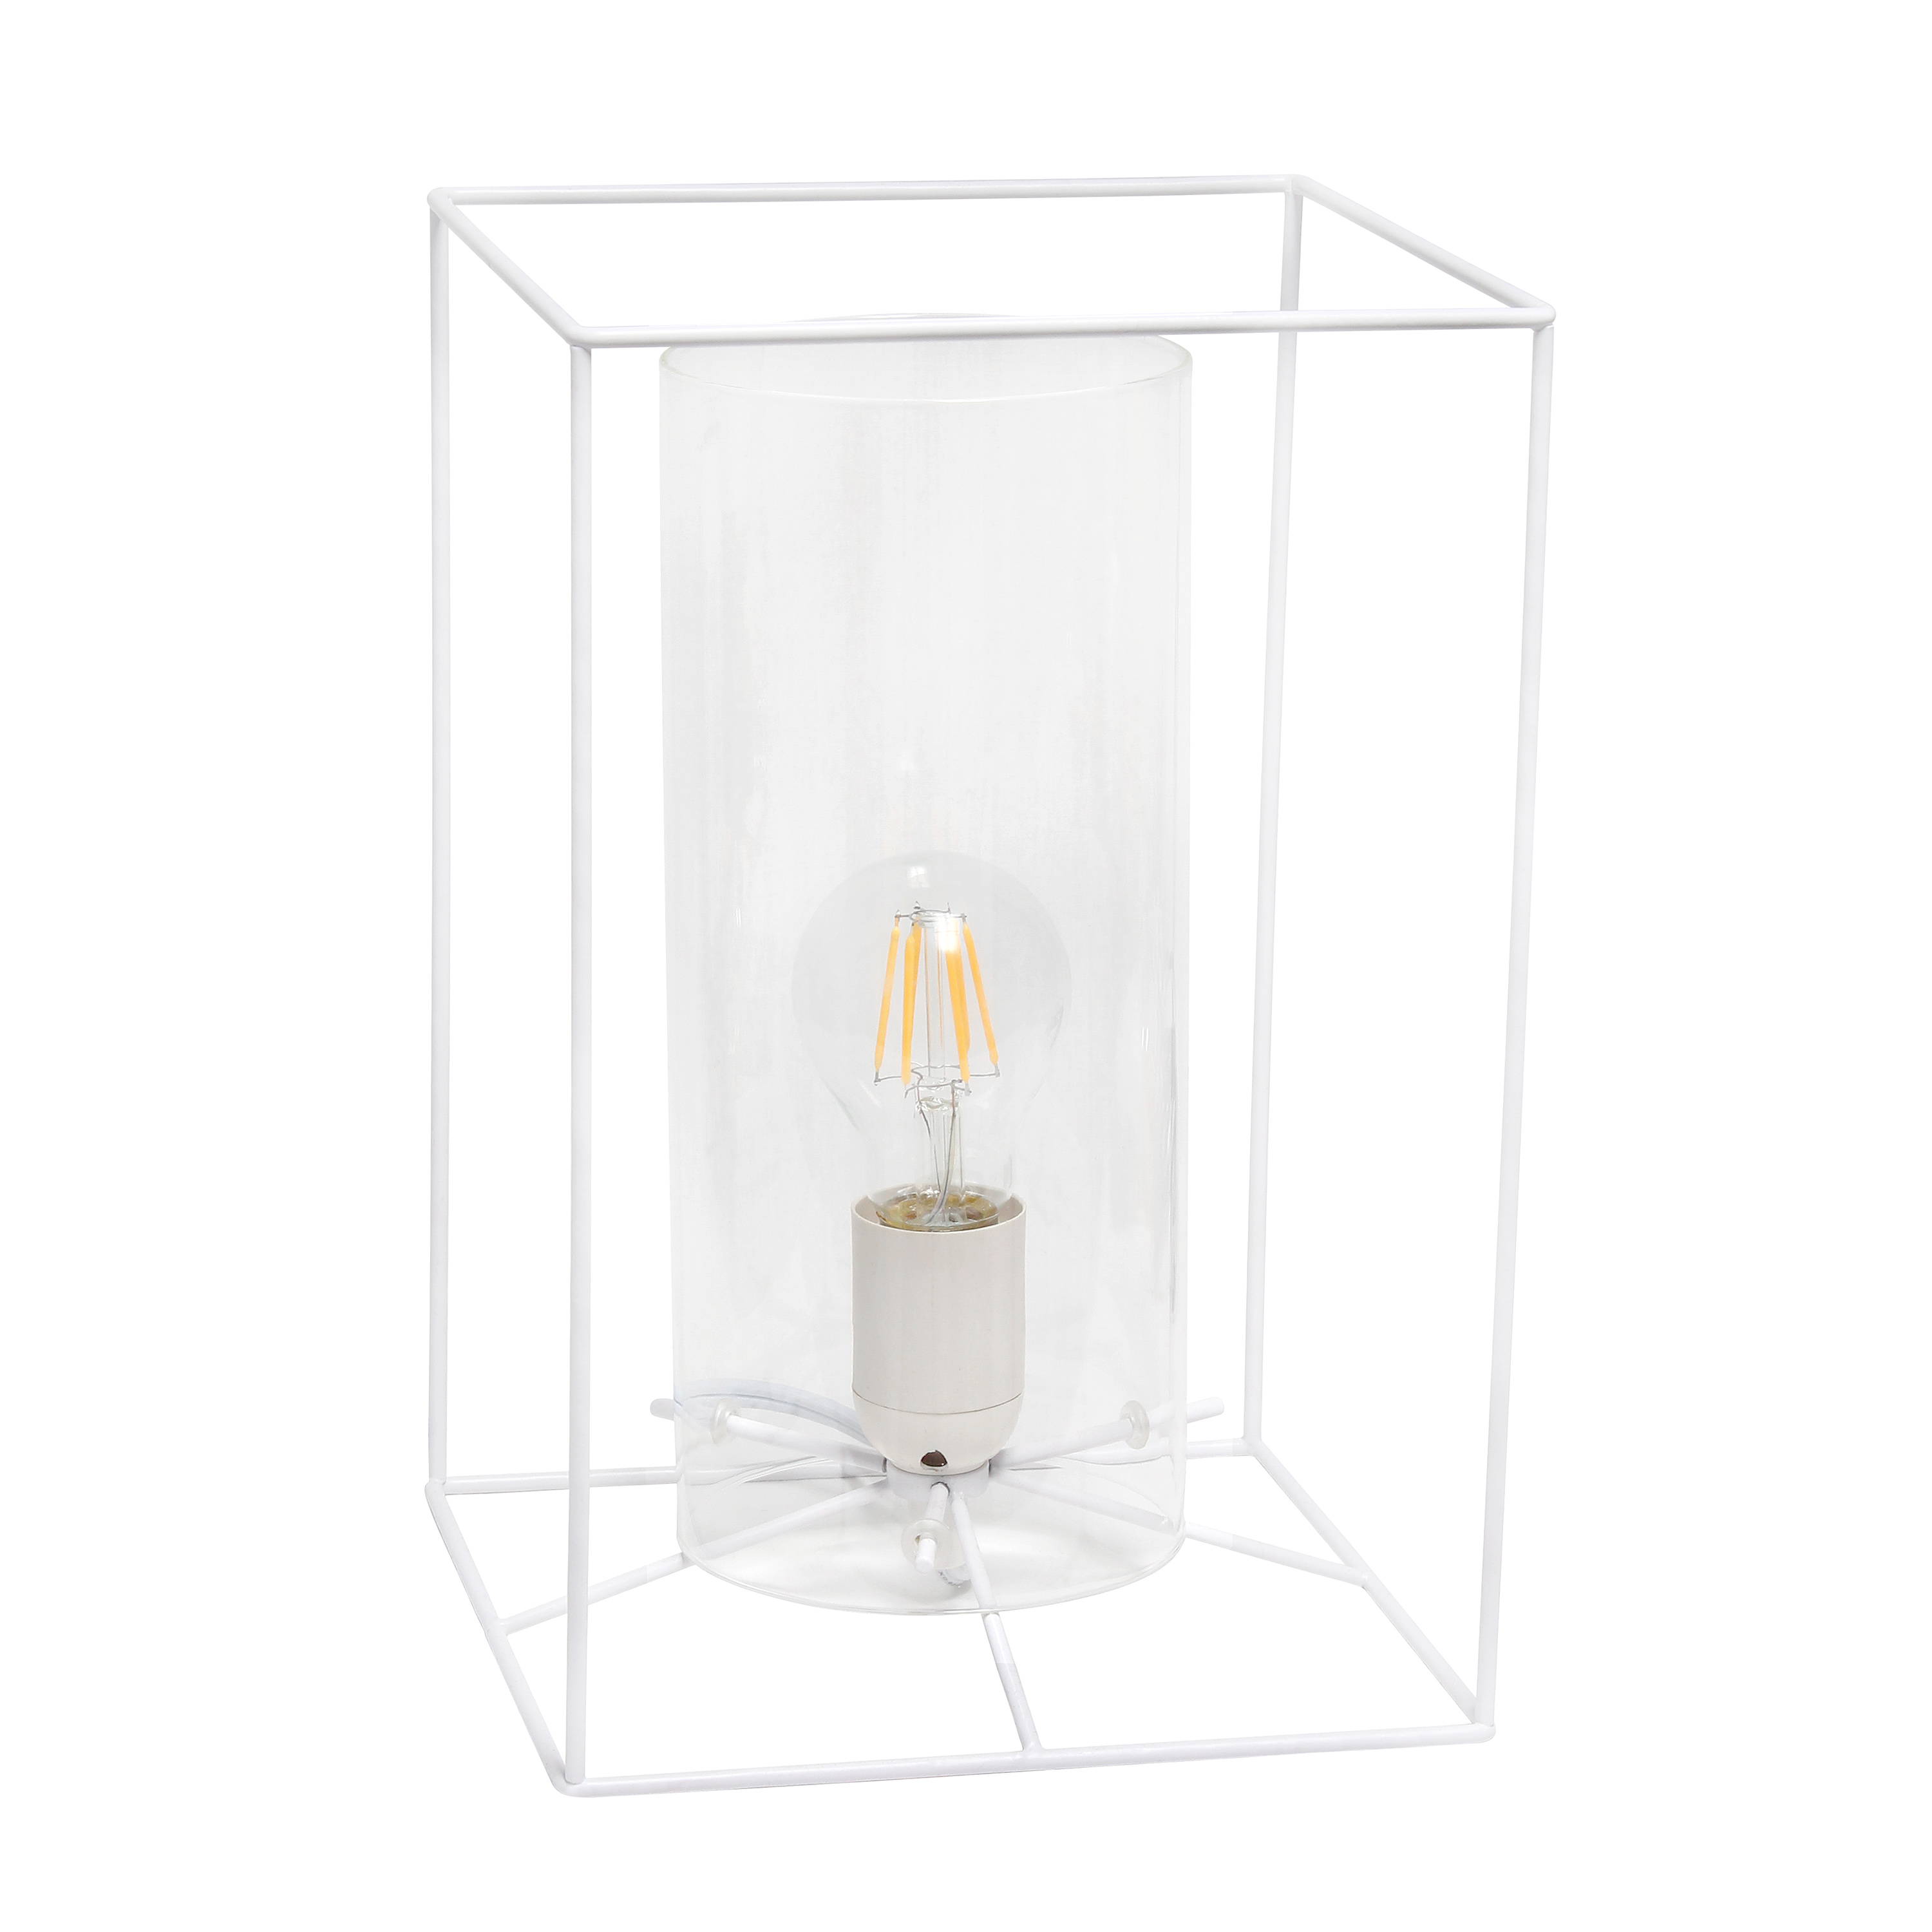 Lalia Home White Framed Table Lamp with Clear Cylinder Glass Shade, Large